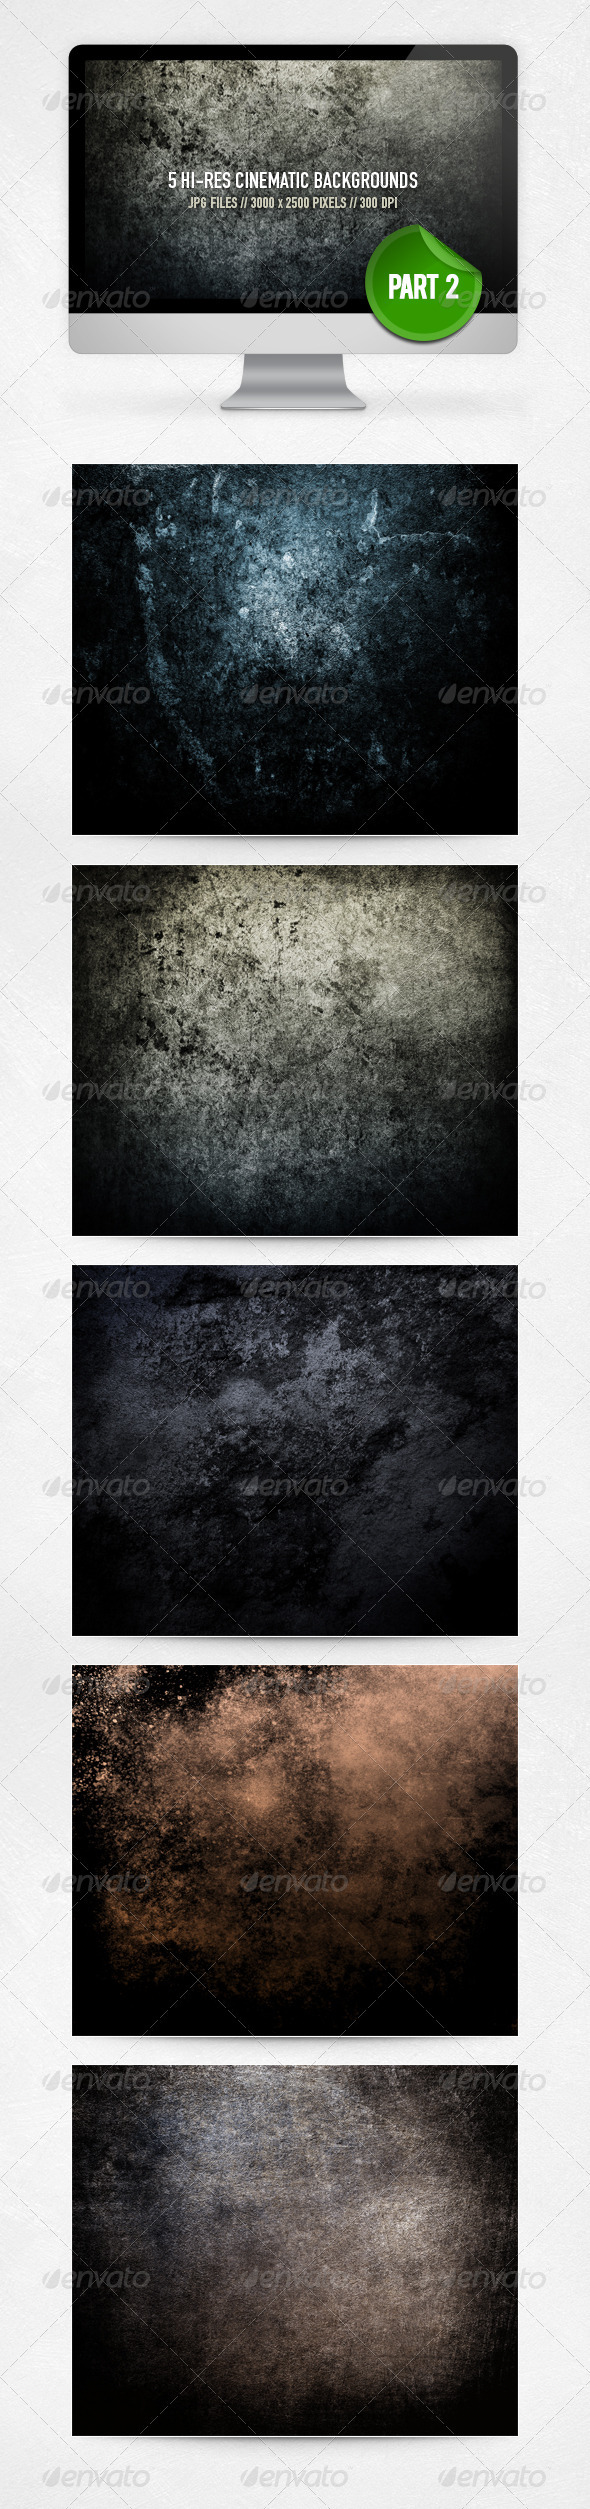 Cinematic Backgrounds - Part 2 - Miscellaneous Backgrounds